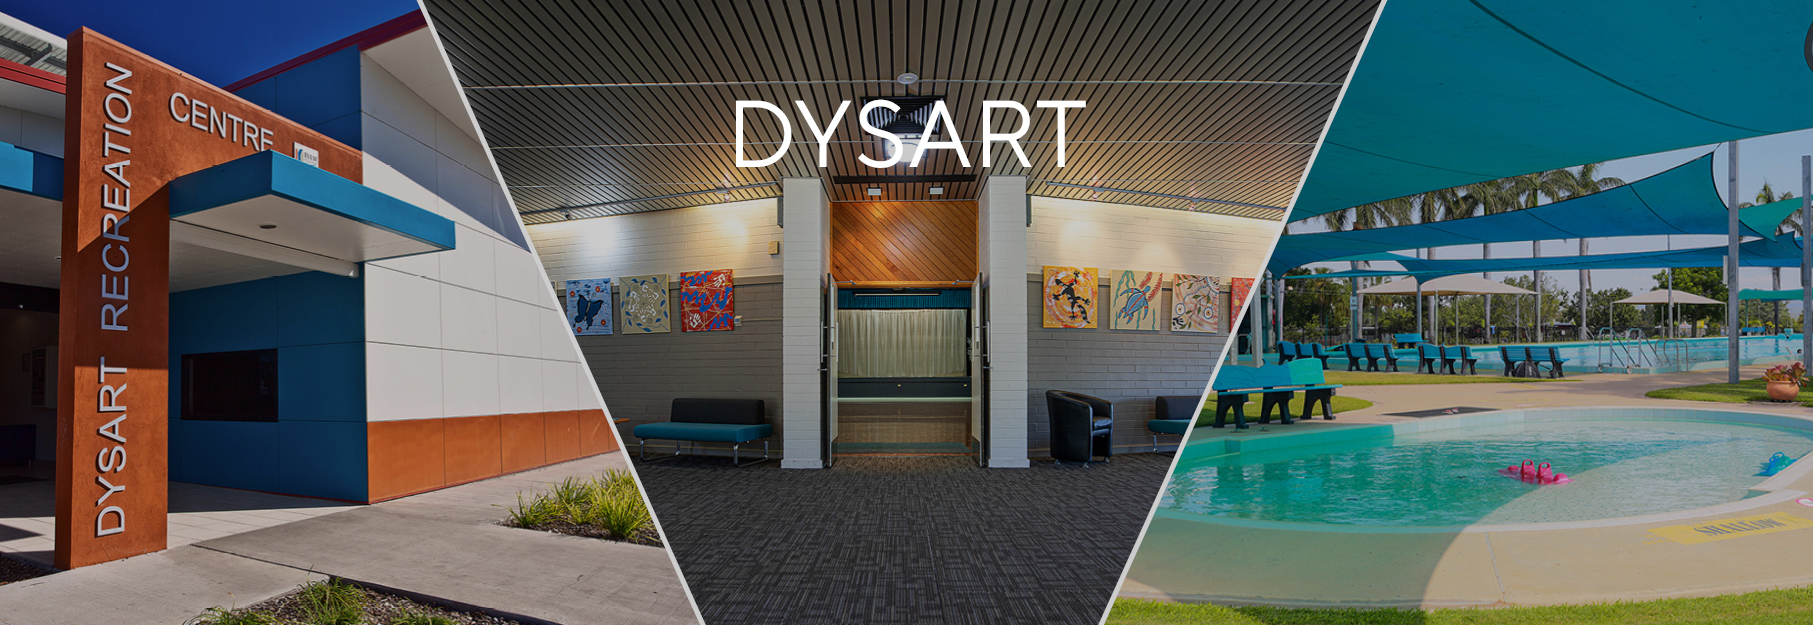 Dysart page banner